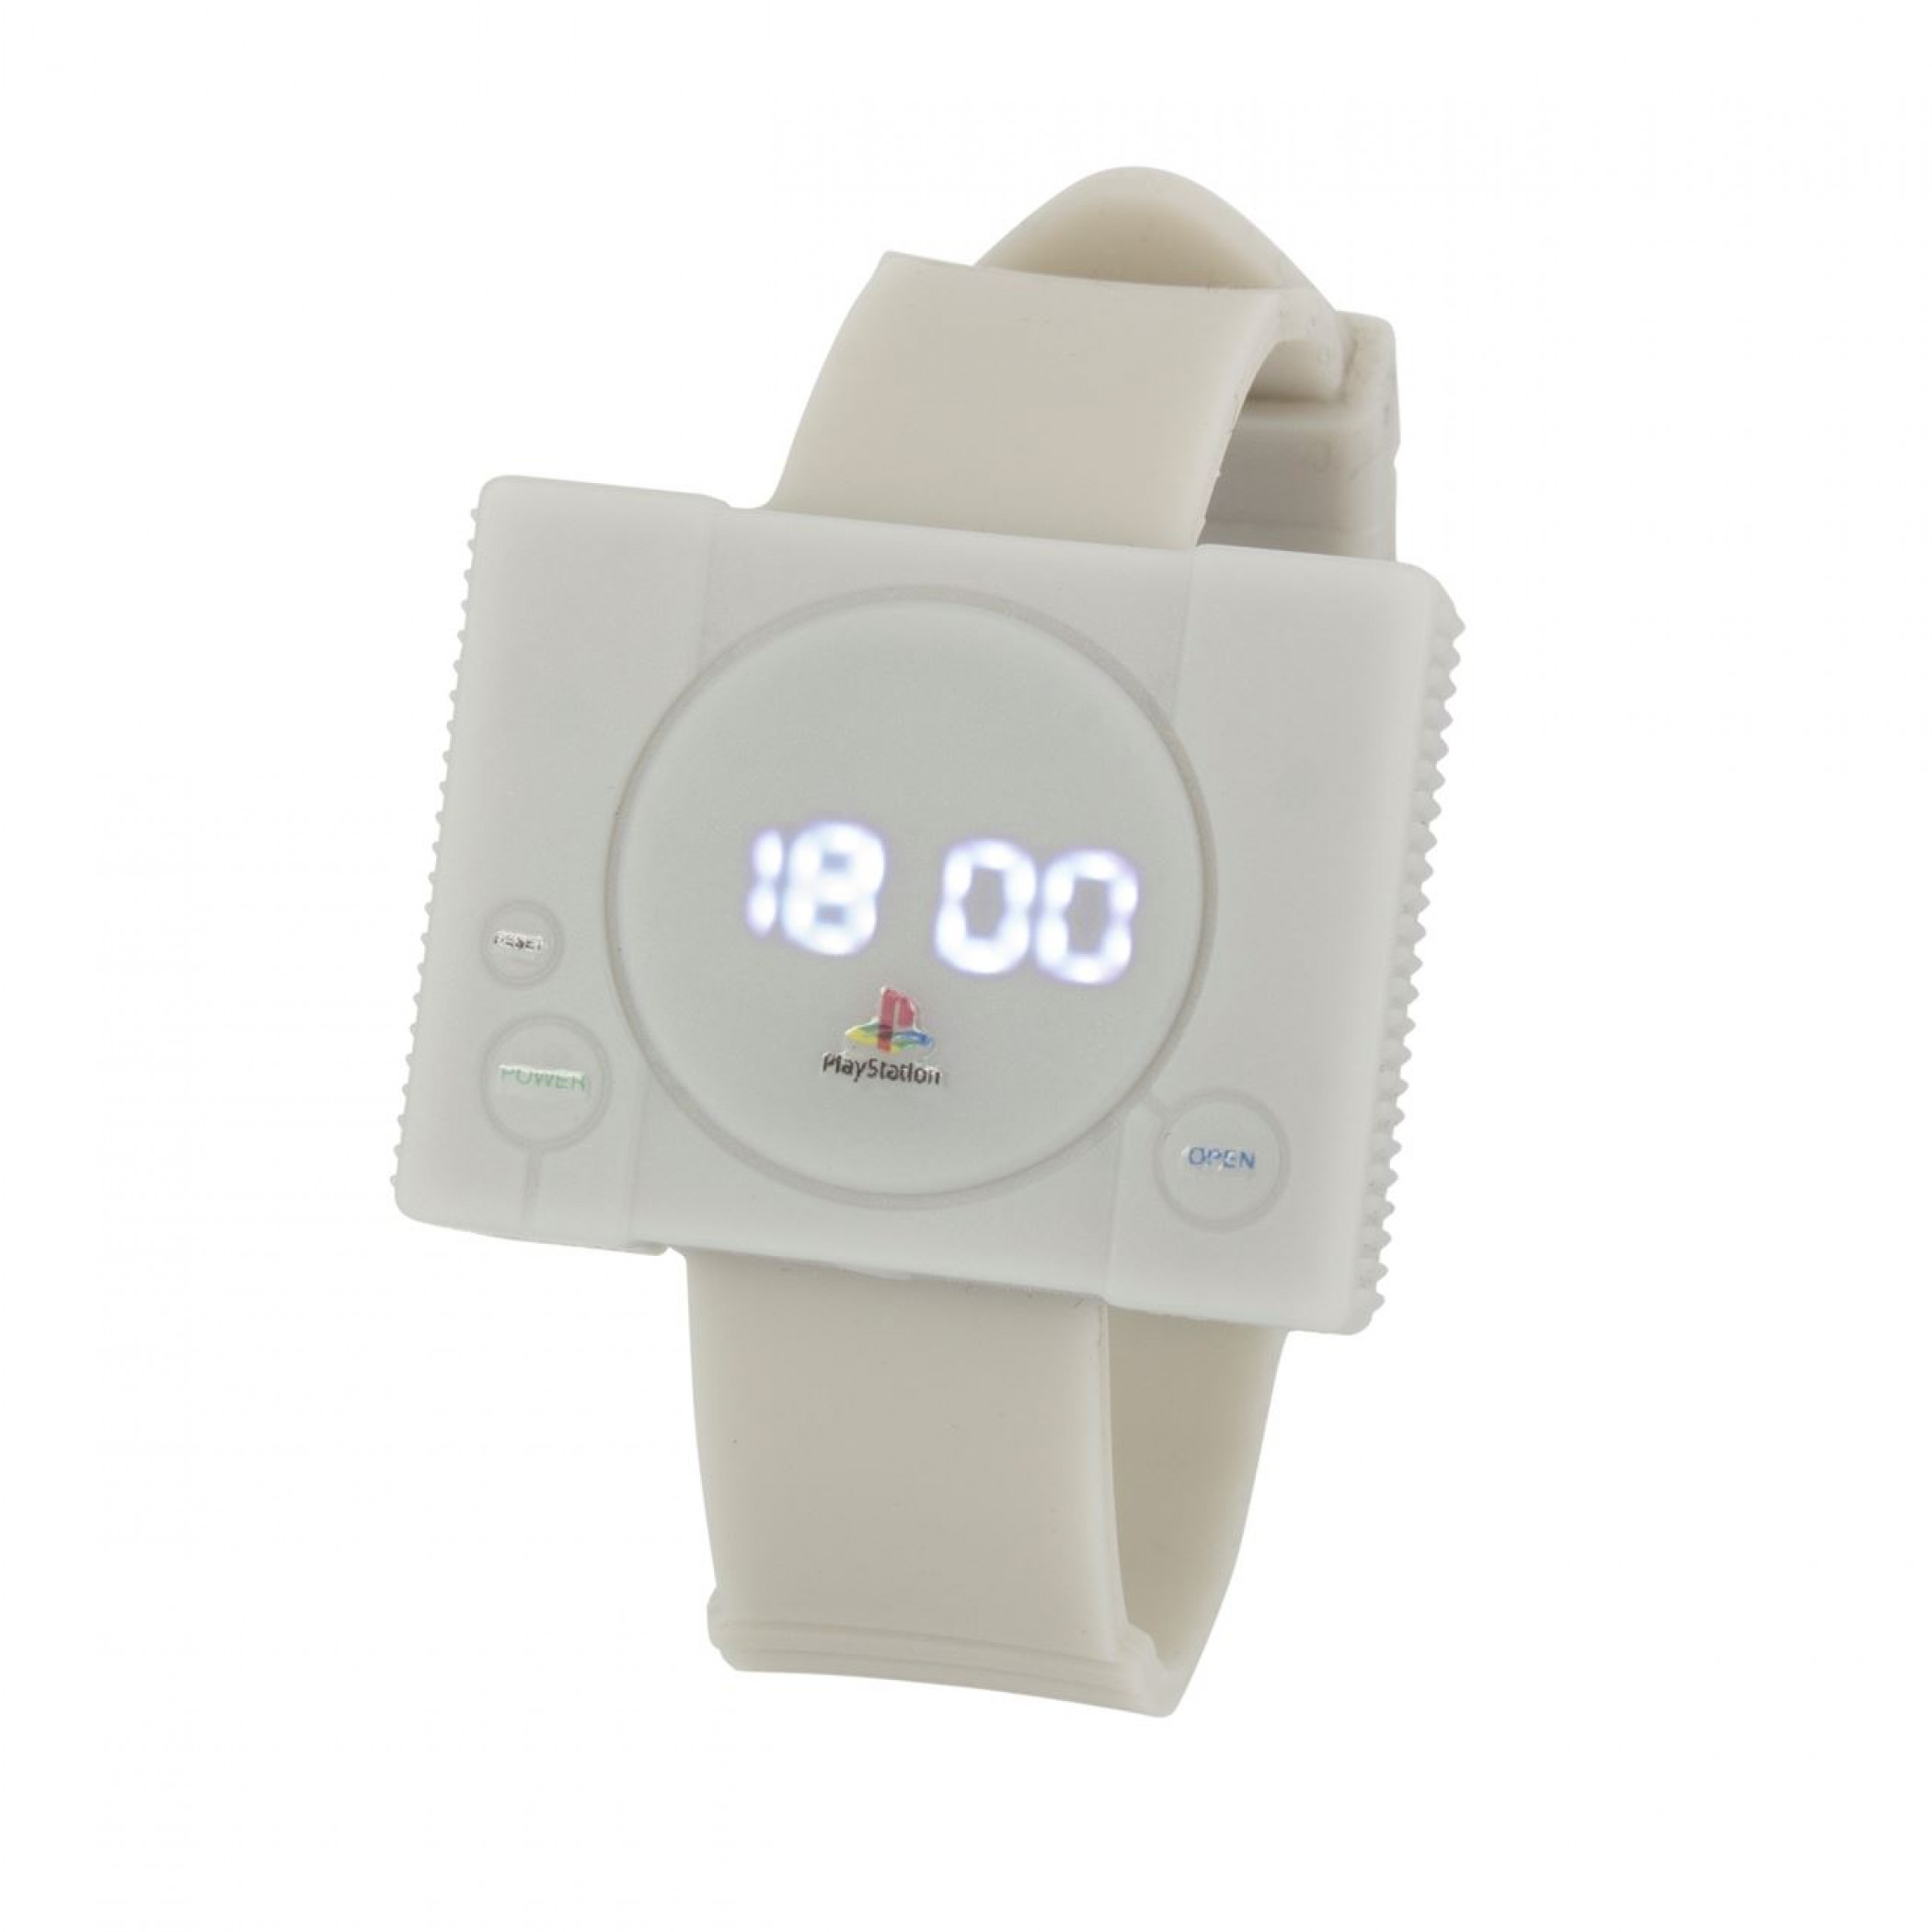 PlayStation Console Watch